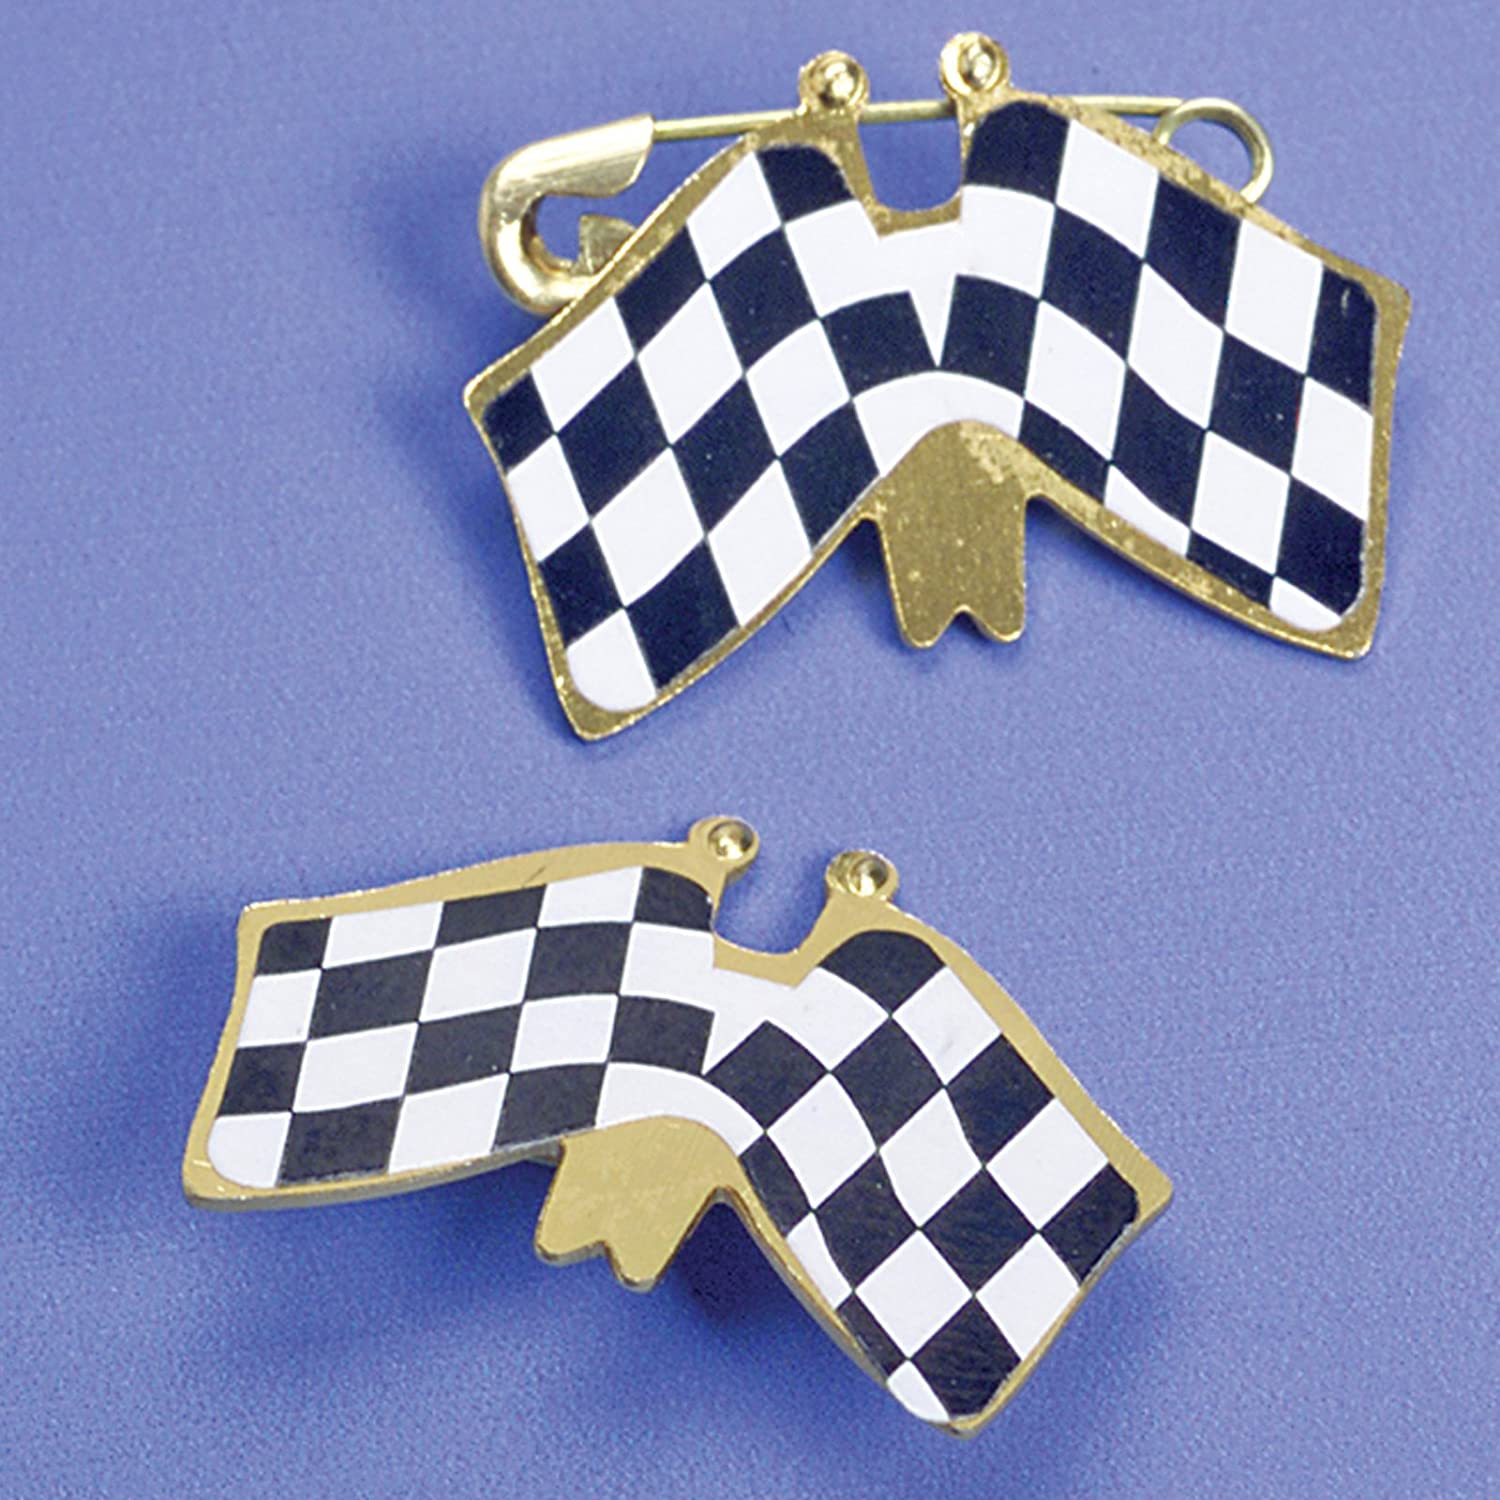 Double Racing Flag Pins Party Accessory-48 Pcs